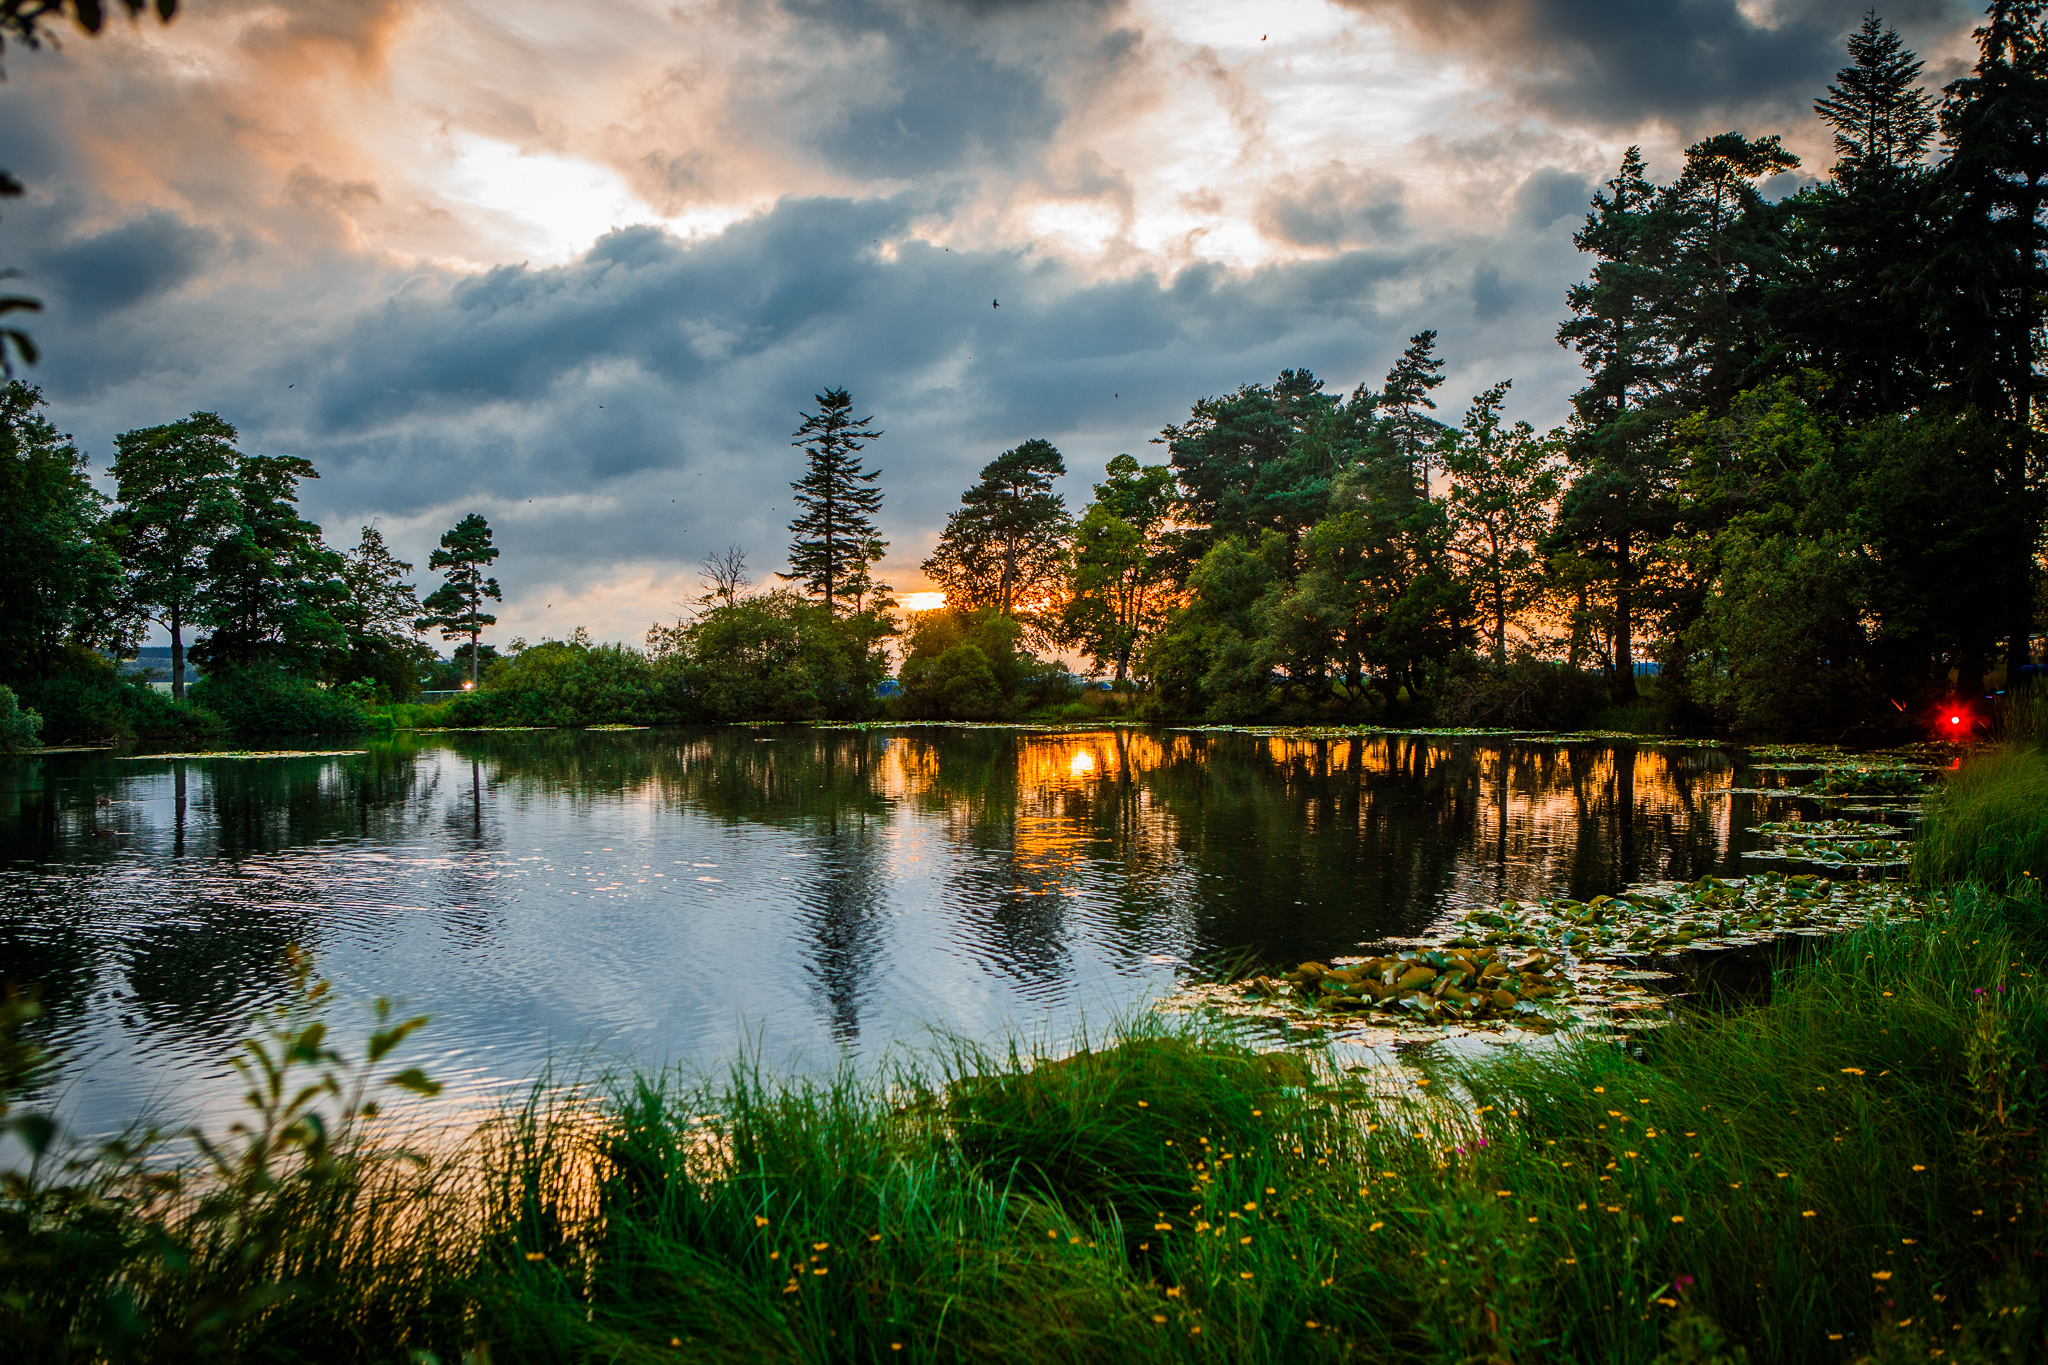 SUNSET BY THE LAKES AT KENDAL CALLING SITE   PICTURE BY: JODY HARTLEY